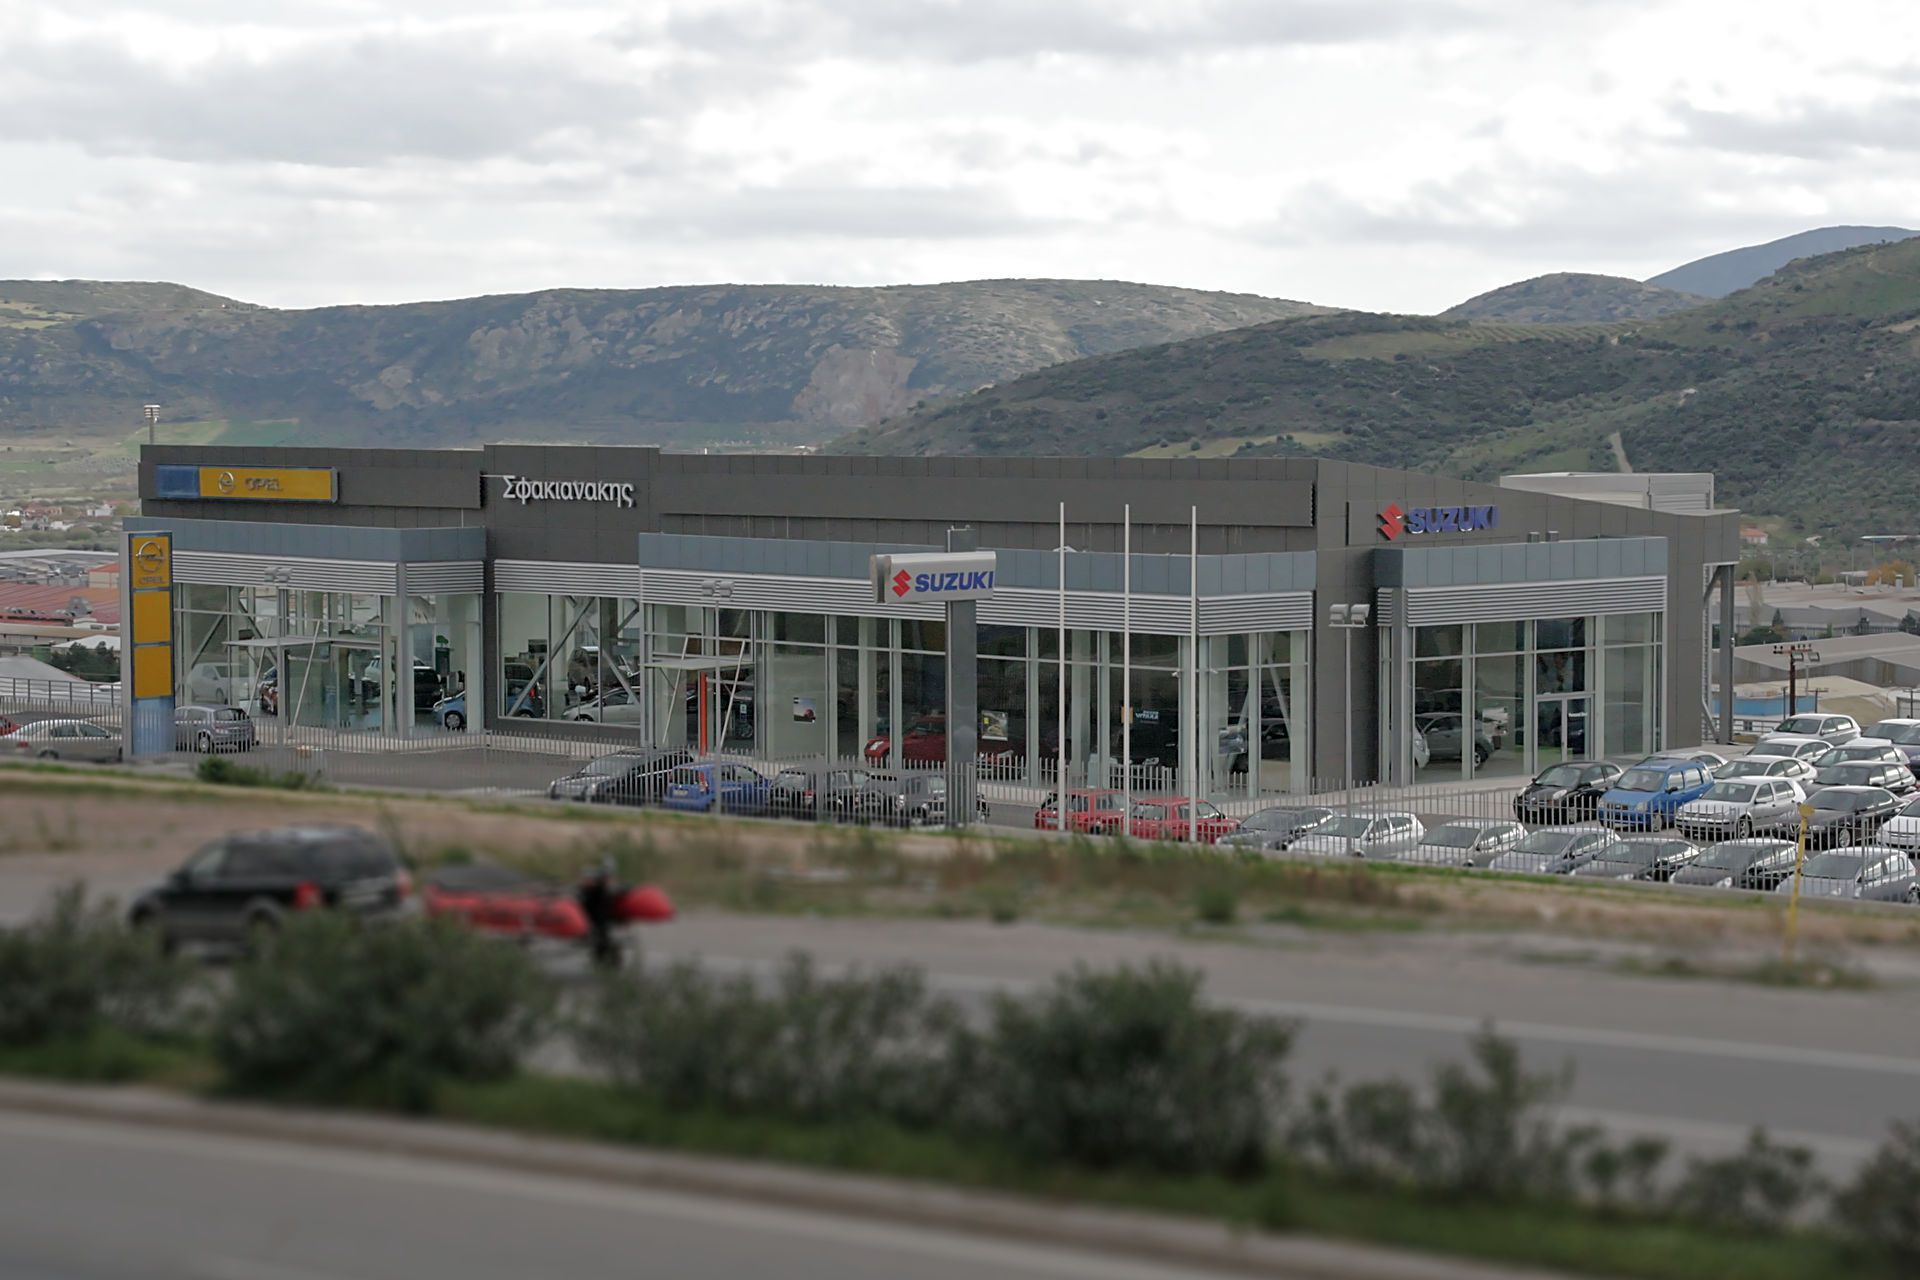 Sfakianiakis S.A. Volos auto show room and service station